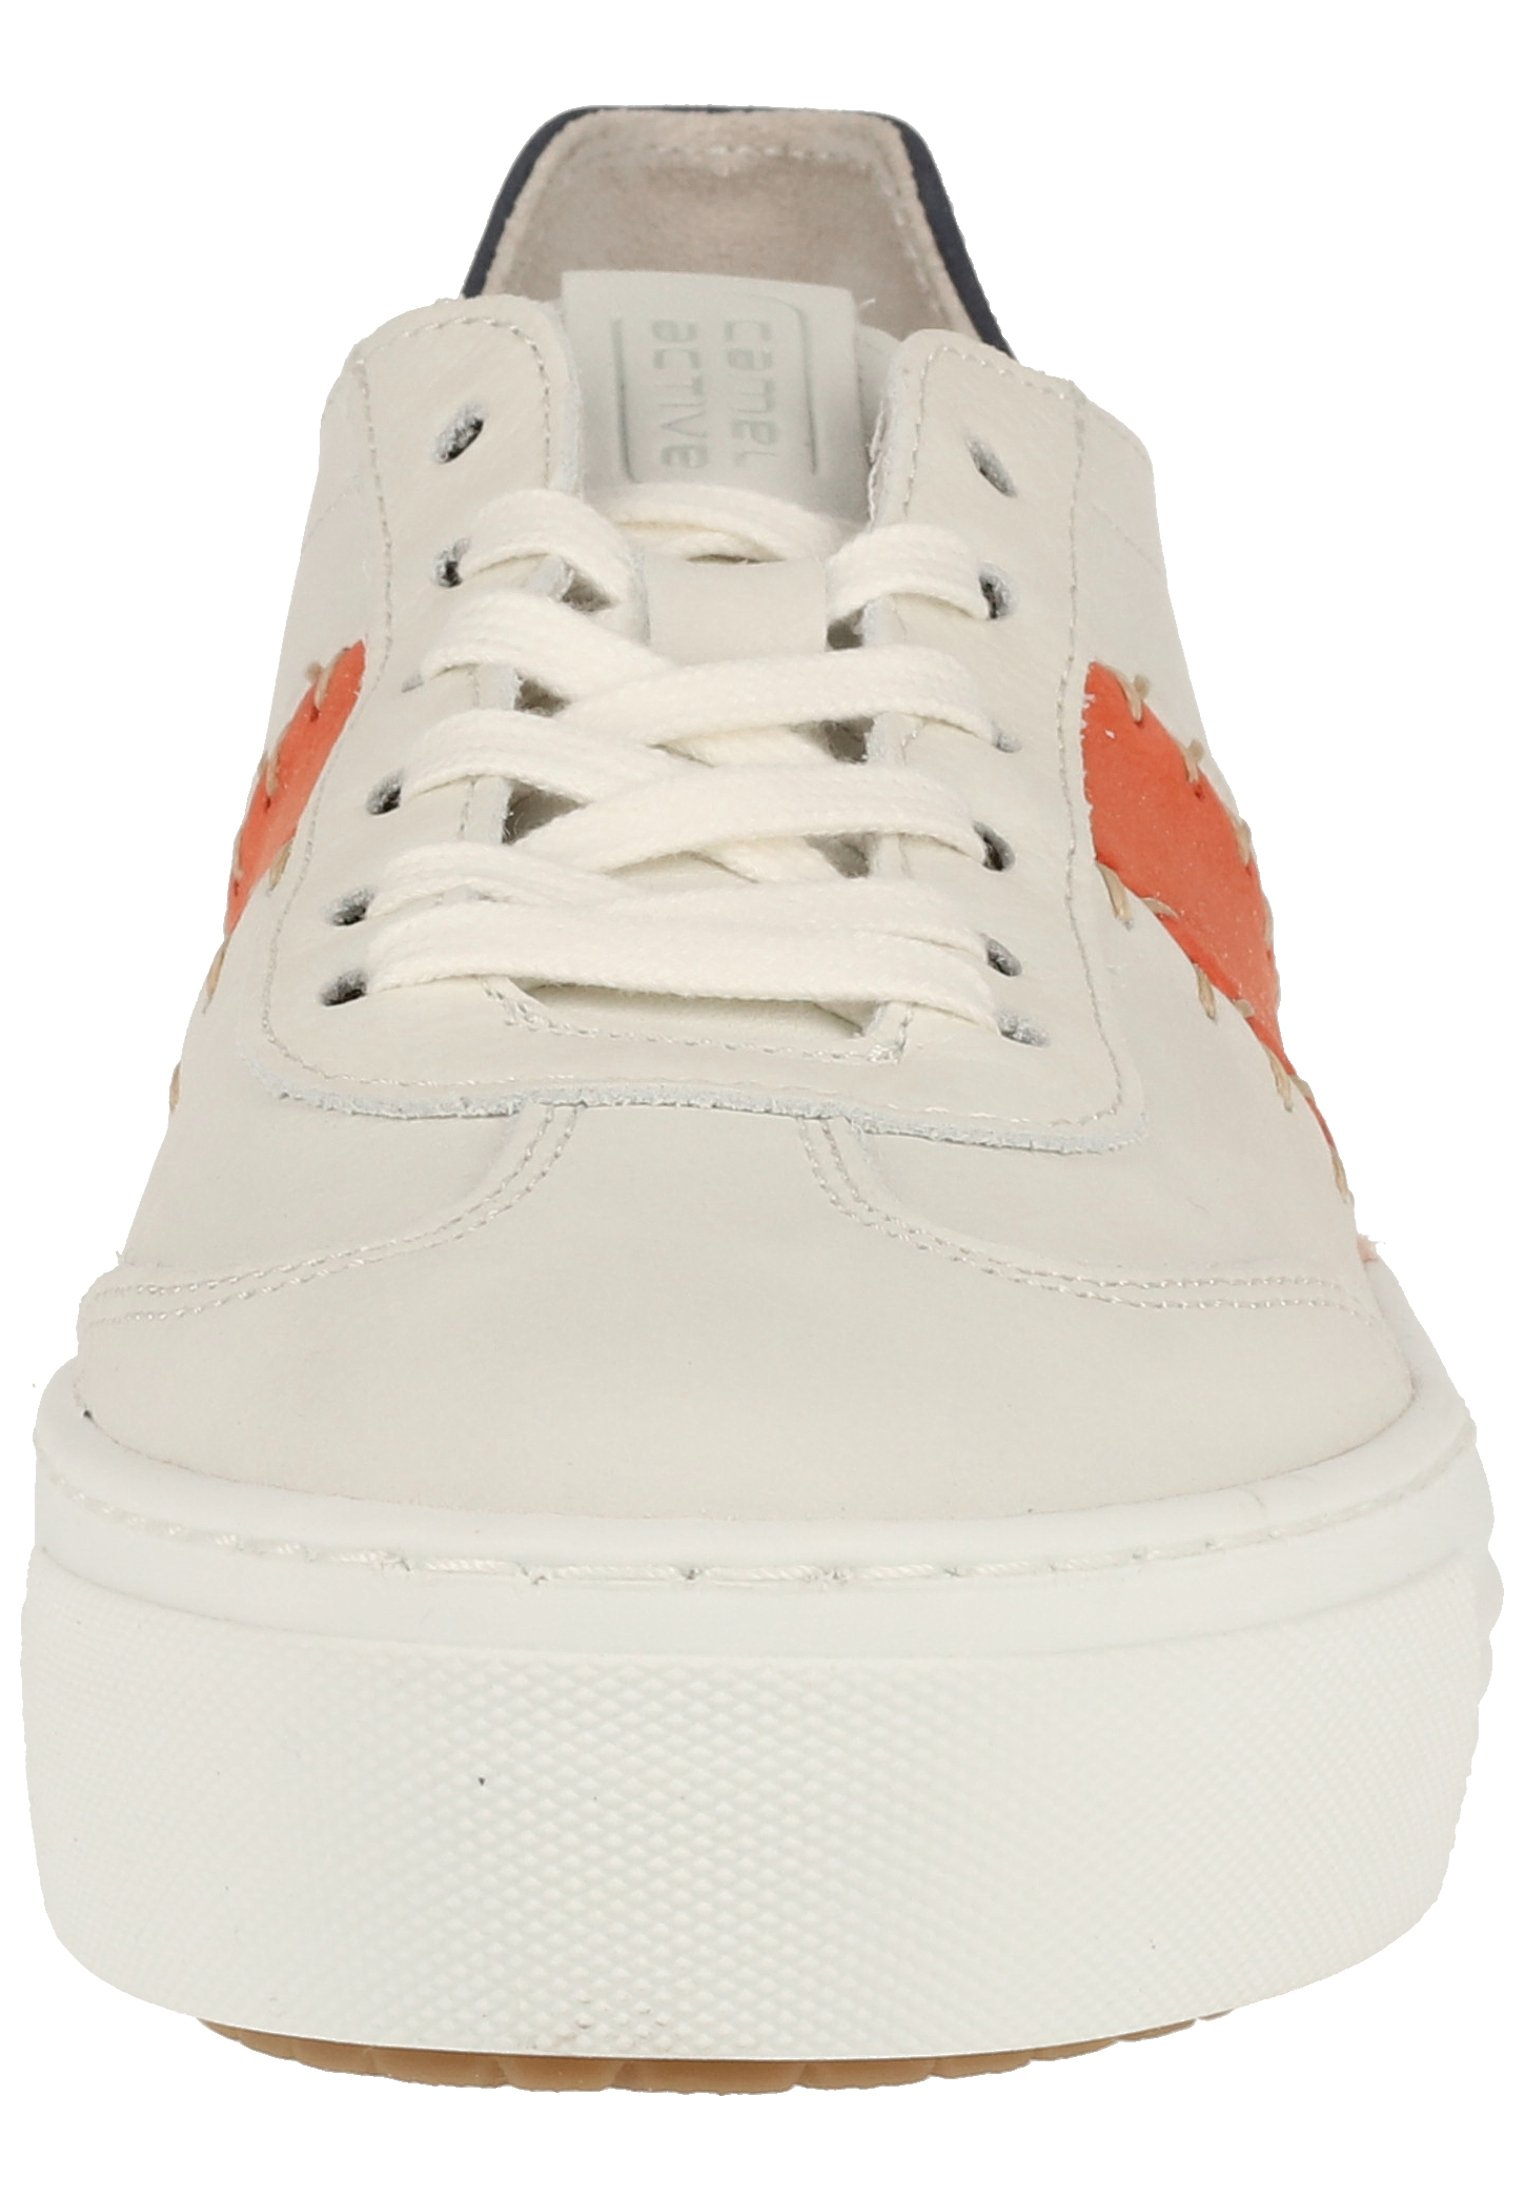 camel active CAMEL ACTIVE SNEAKER - Sneakers - white/coral/jeans 01